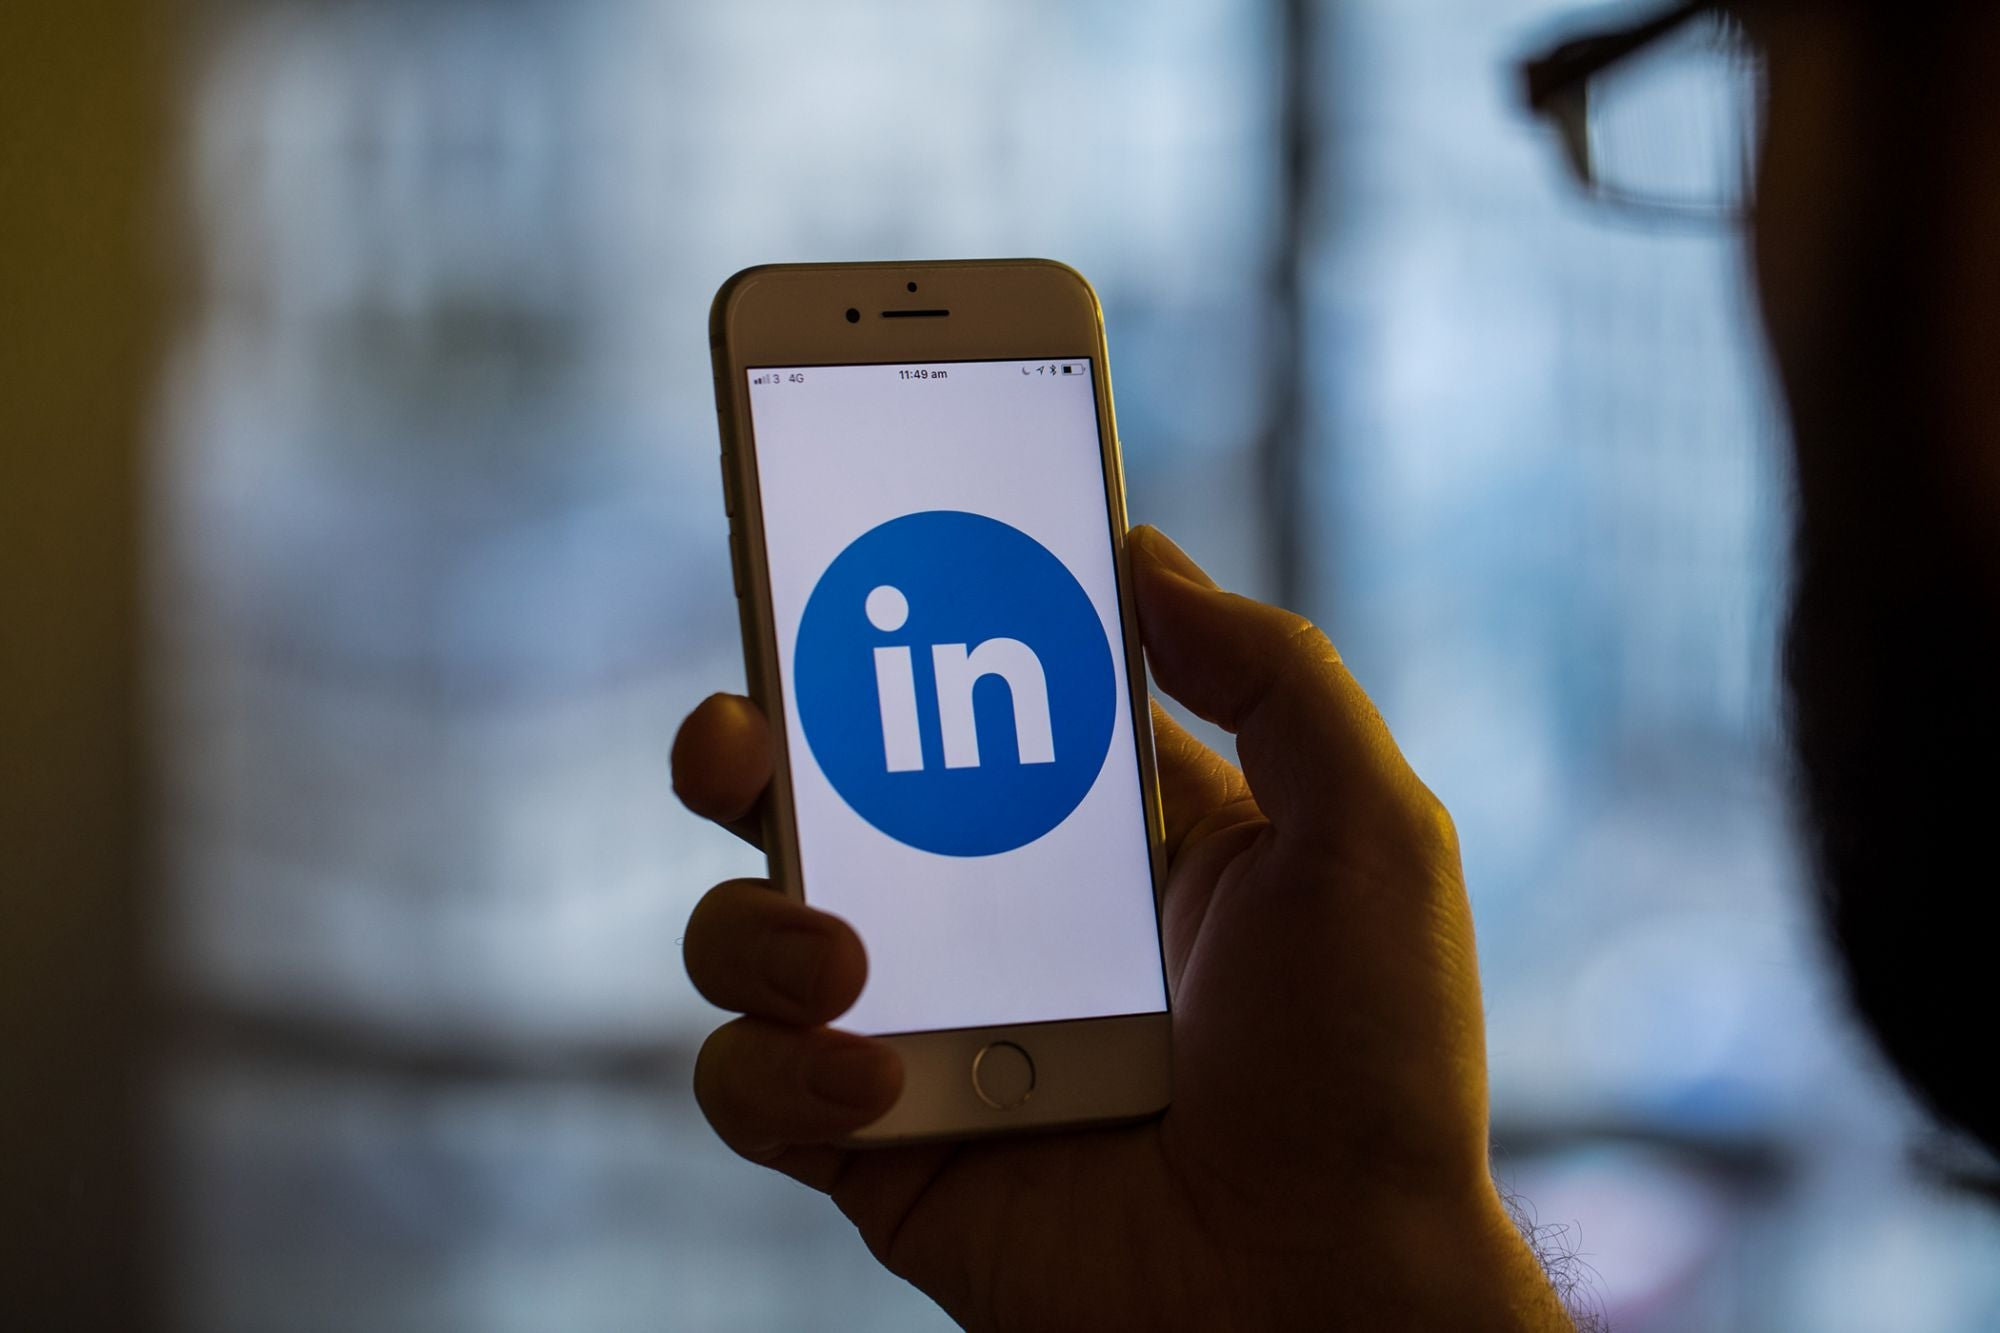 QnA VBage The 6 Hidden LinkedIn Apps That Can Take Your Business to the Next Level